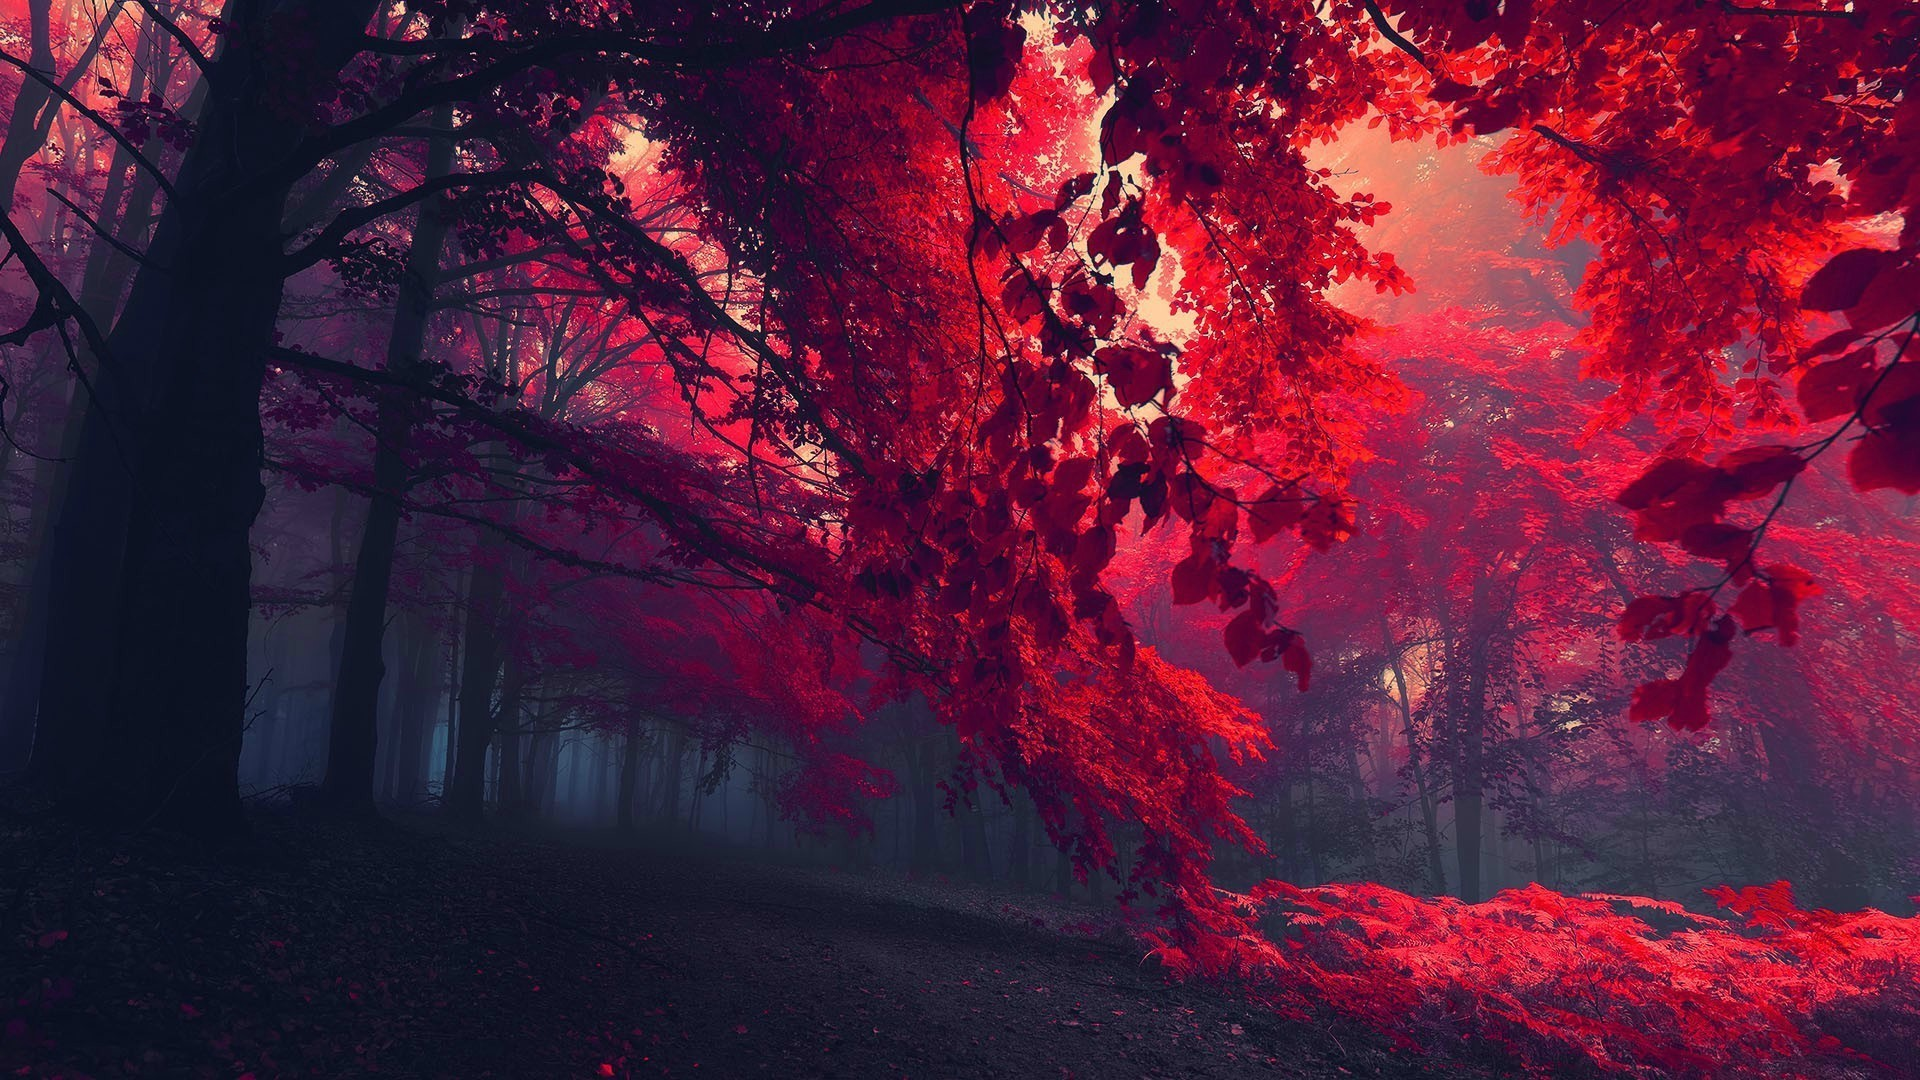 Autumn Red Forest Wallpaper 1920x1080 px